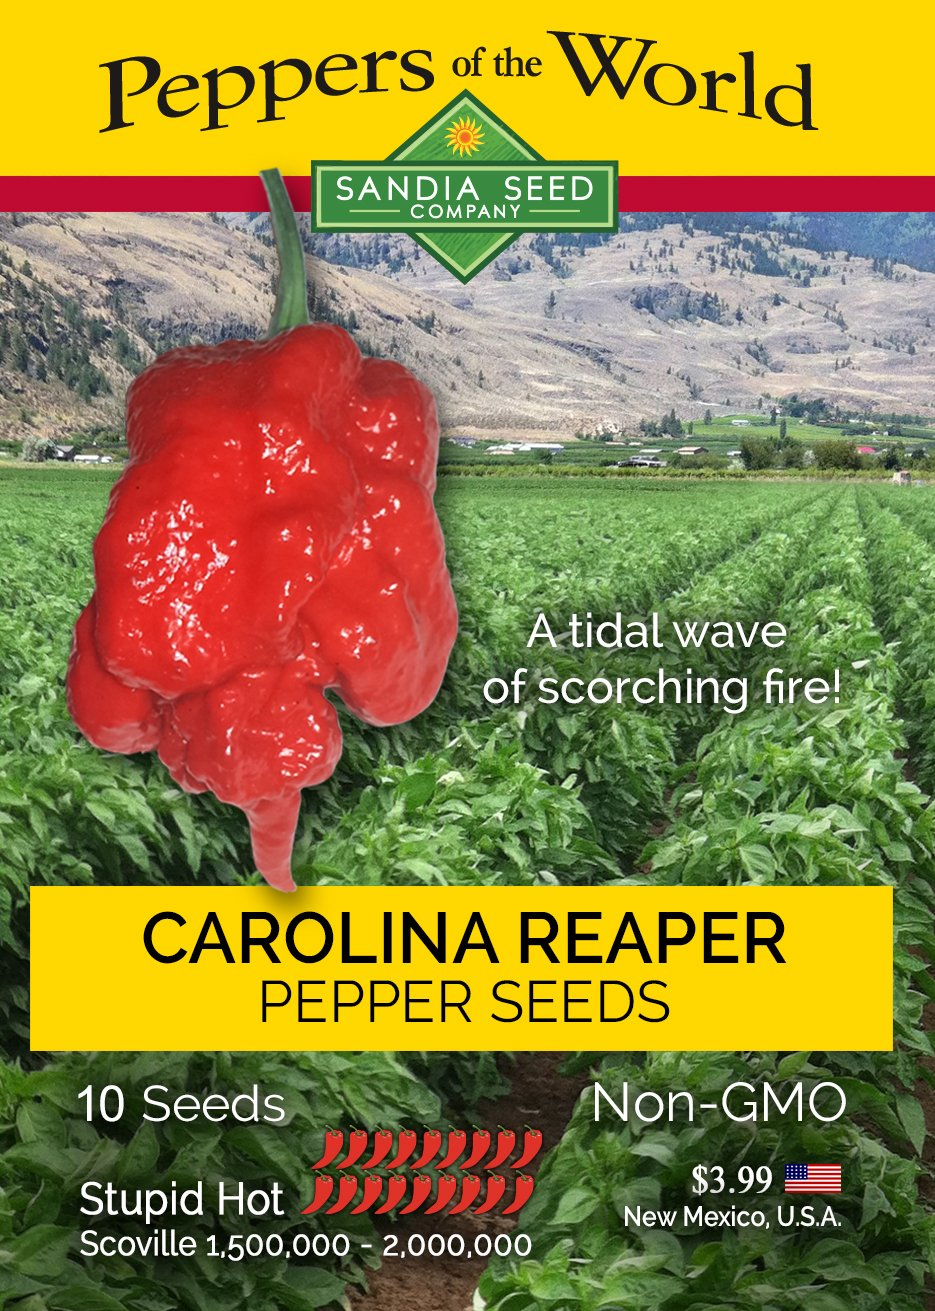 Carolina Reaper Pepper seeds for sale